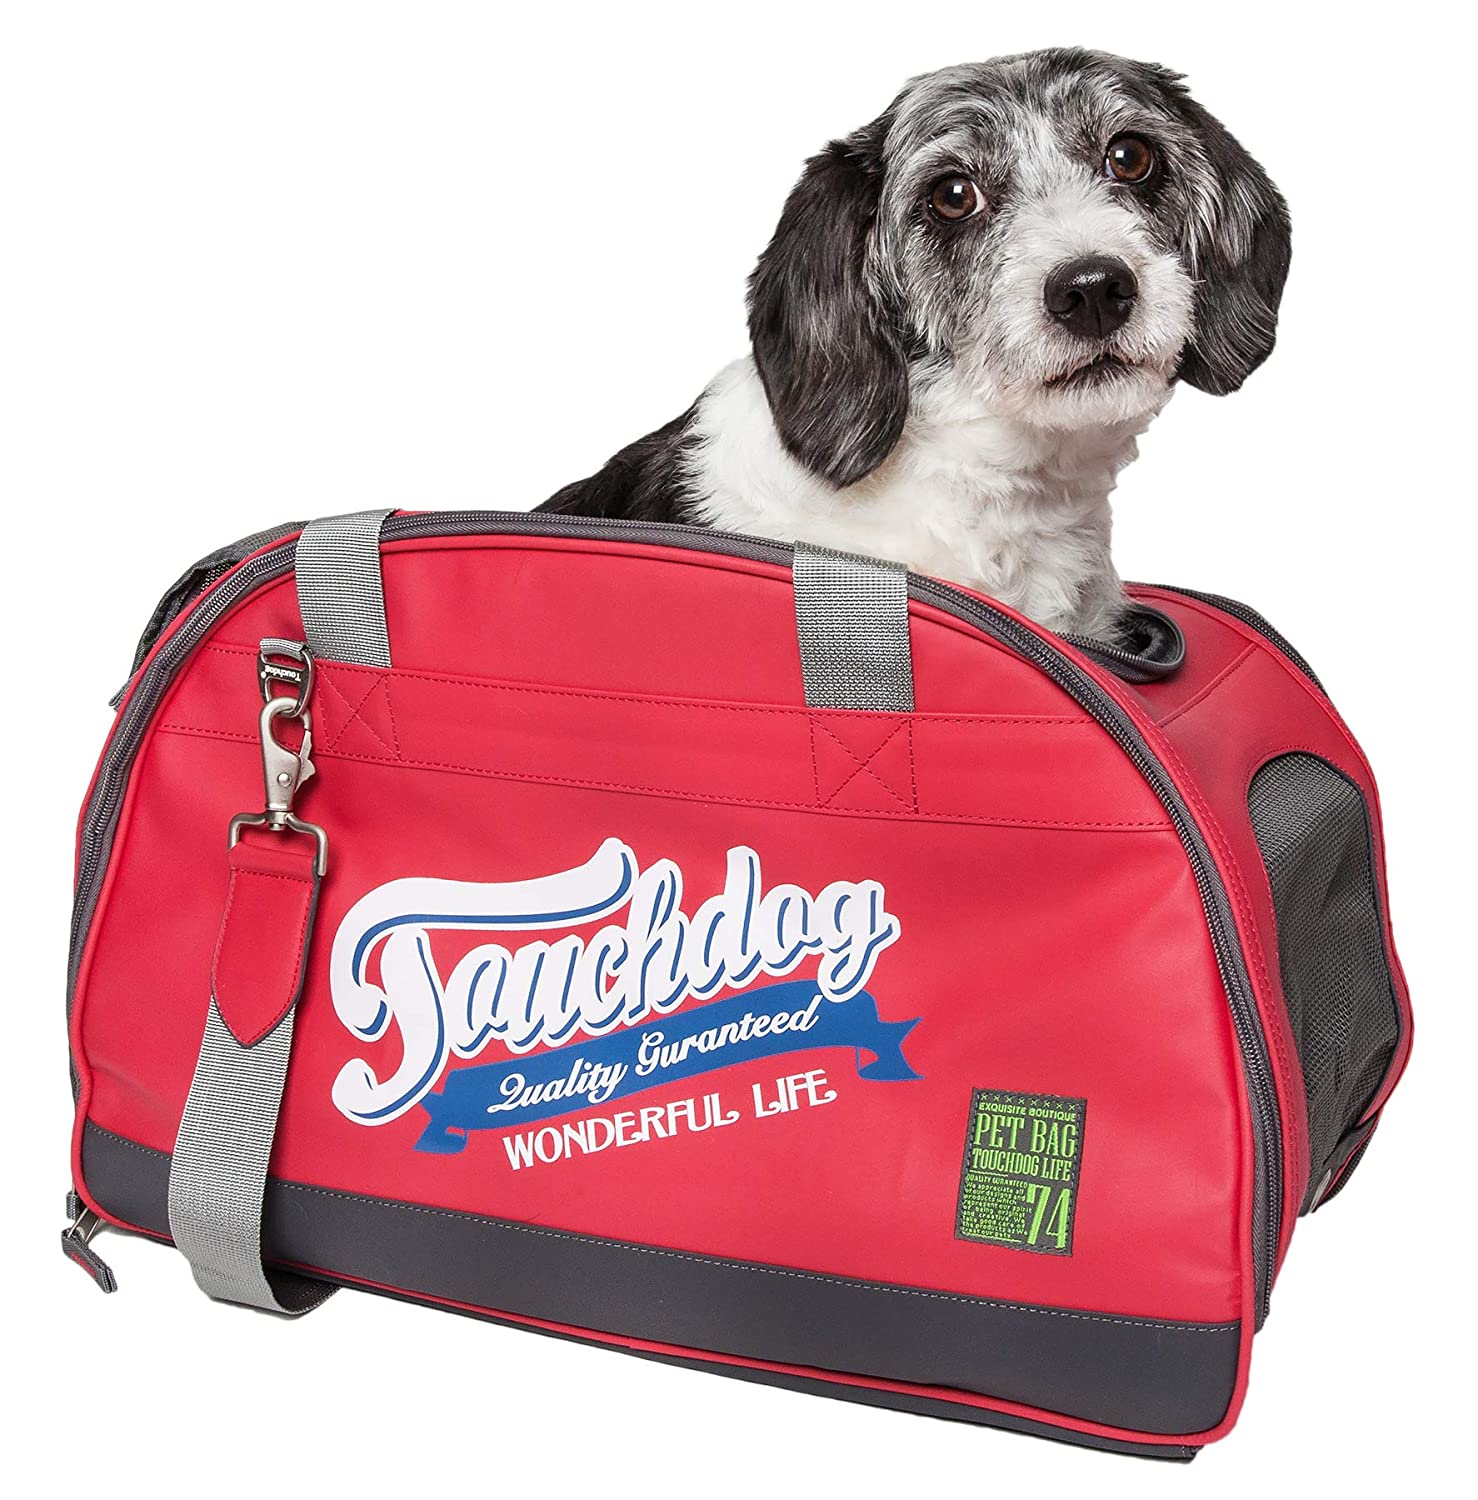 Touchdog Original Wick-Guard Water Resistant Fashion Pet Carrier, One Size, Red